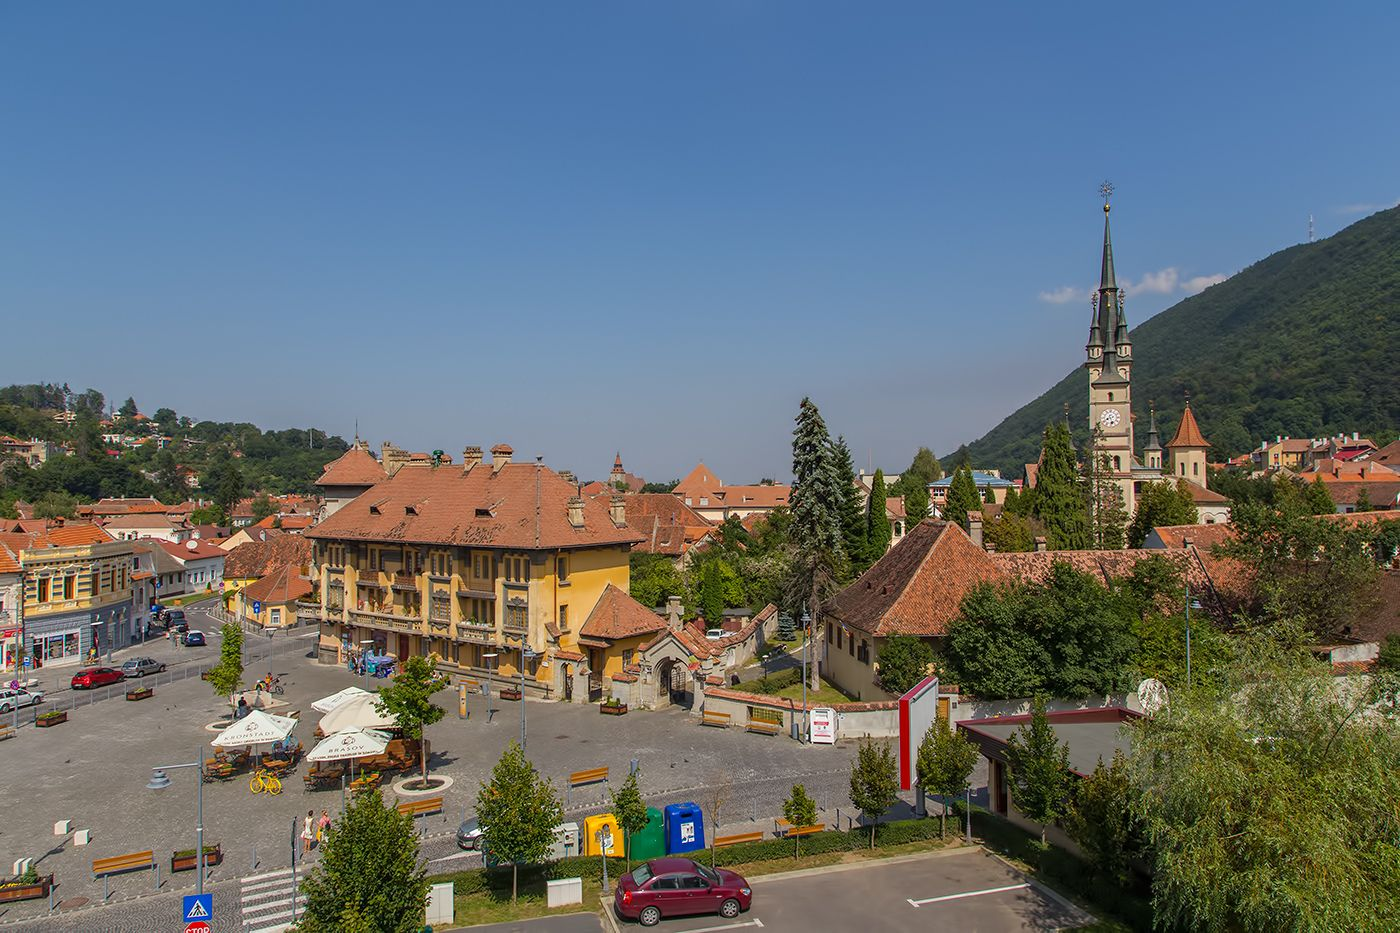 Hotel Coroana Brasovului. Elegance in the Heart of Transylvania